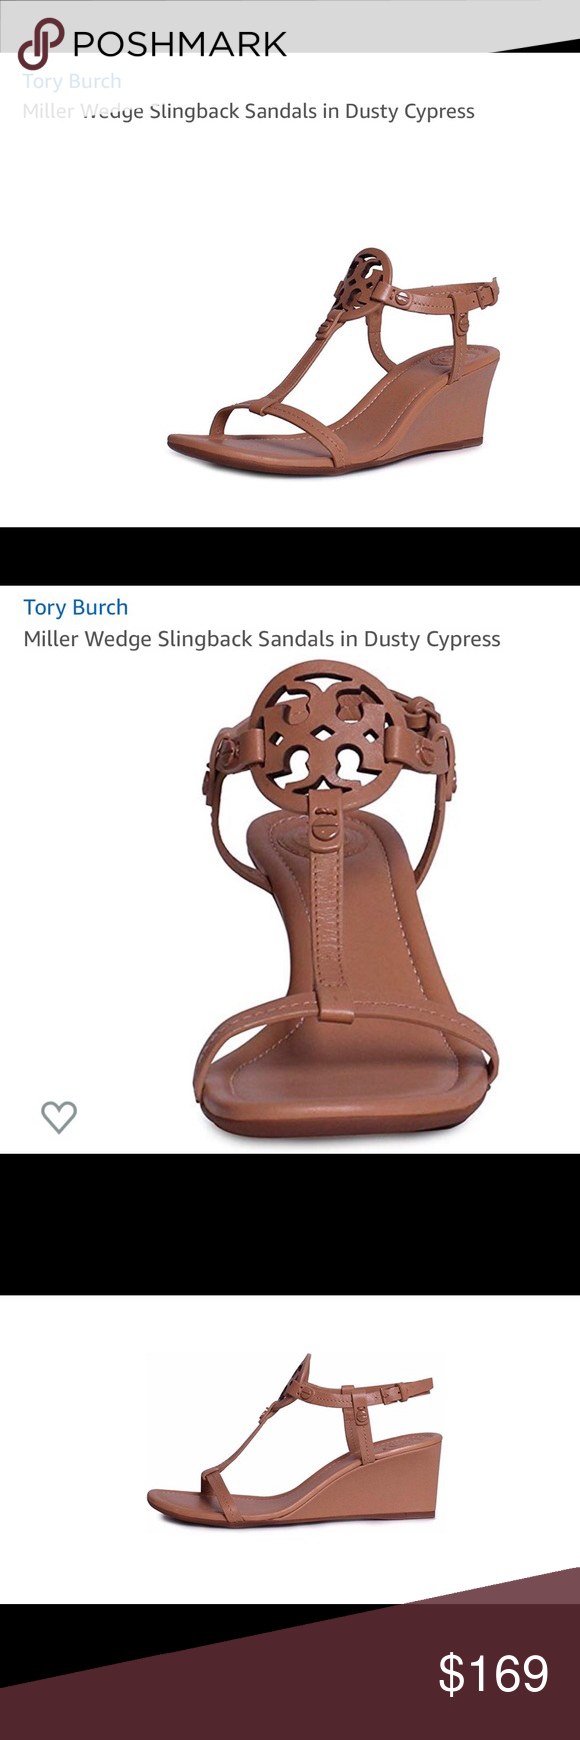 04fd28e0bf Tory Burch Miller Wedge Brand new! TB Miller Wedge in Dusty Cypress. Bought  online and can't return. My loss is your gain. Price is firm Tory Burch  Shoes ...